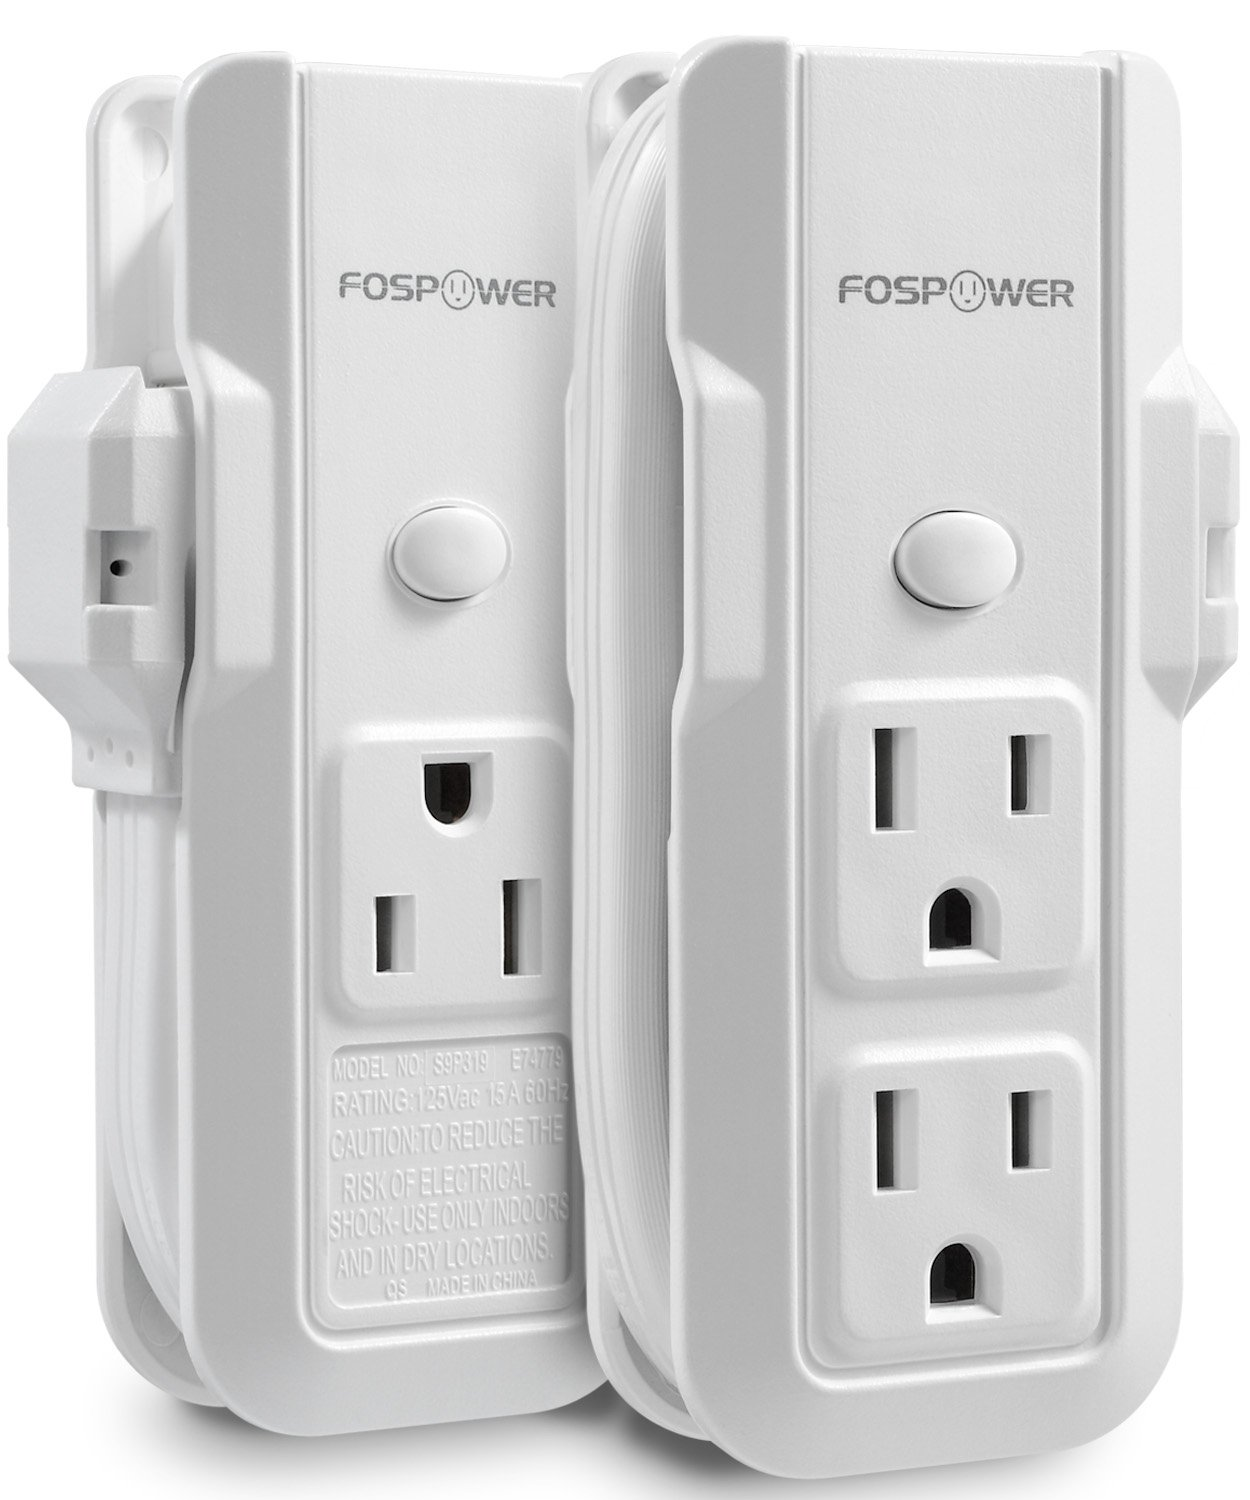 FosPower (2 Pack) 3-Outlet Mini Power Strip with 10inch Wraparound Extension Cord & 90 Degree Plug Adapter Wall Tap for Home Office & Travel (White)